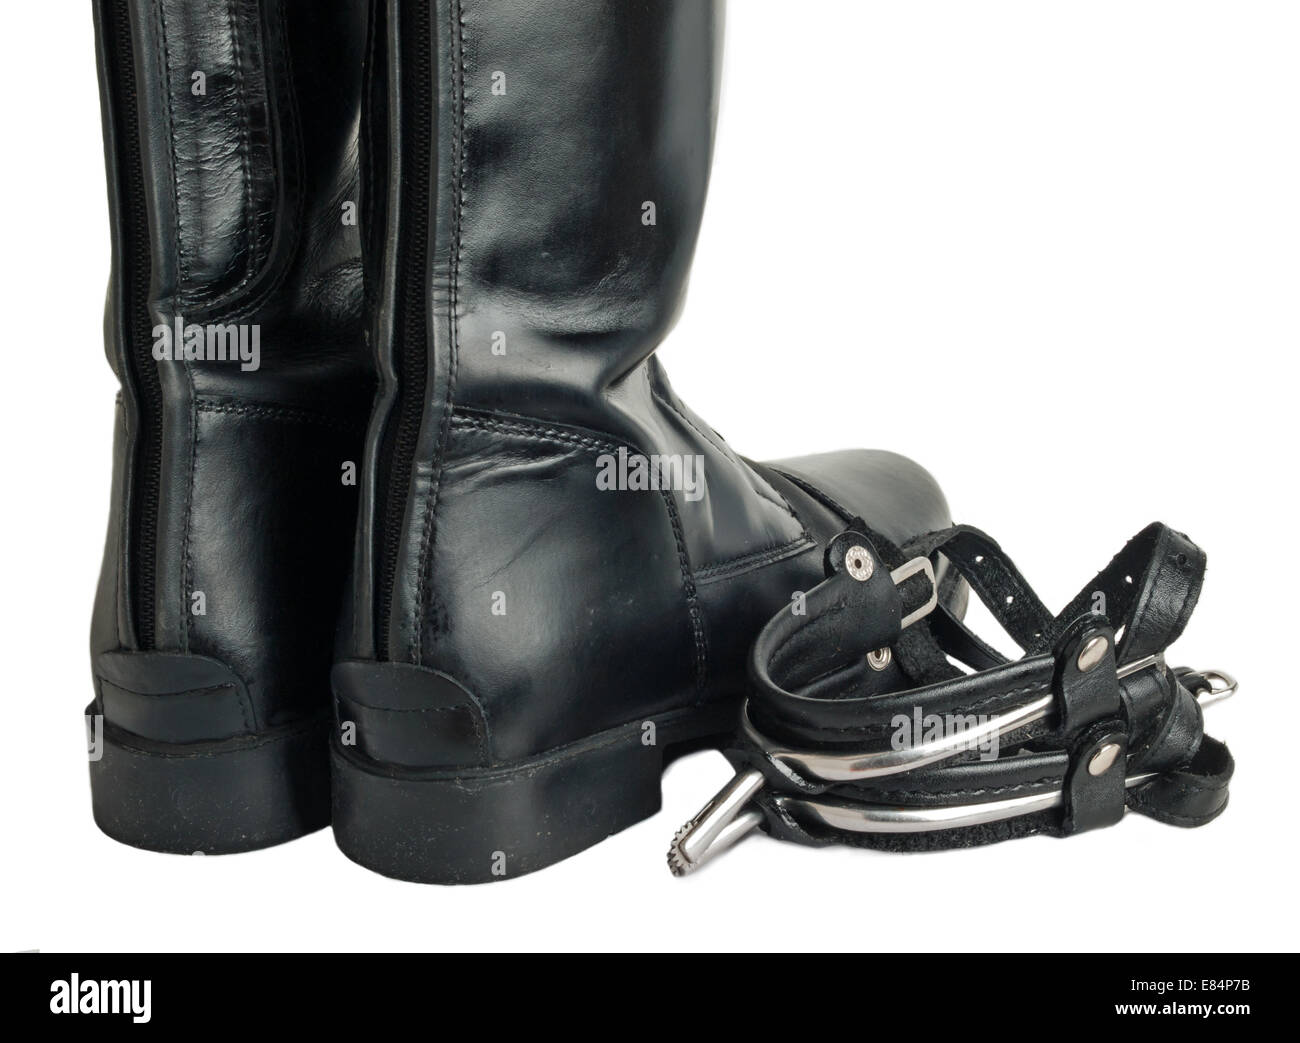 Riding Boots High Resolution Stock Photography And Images Alamy